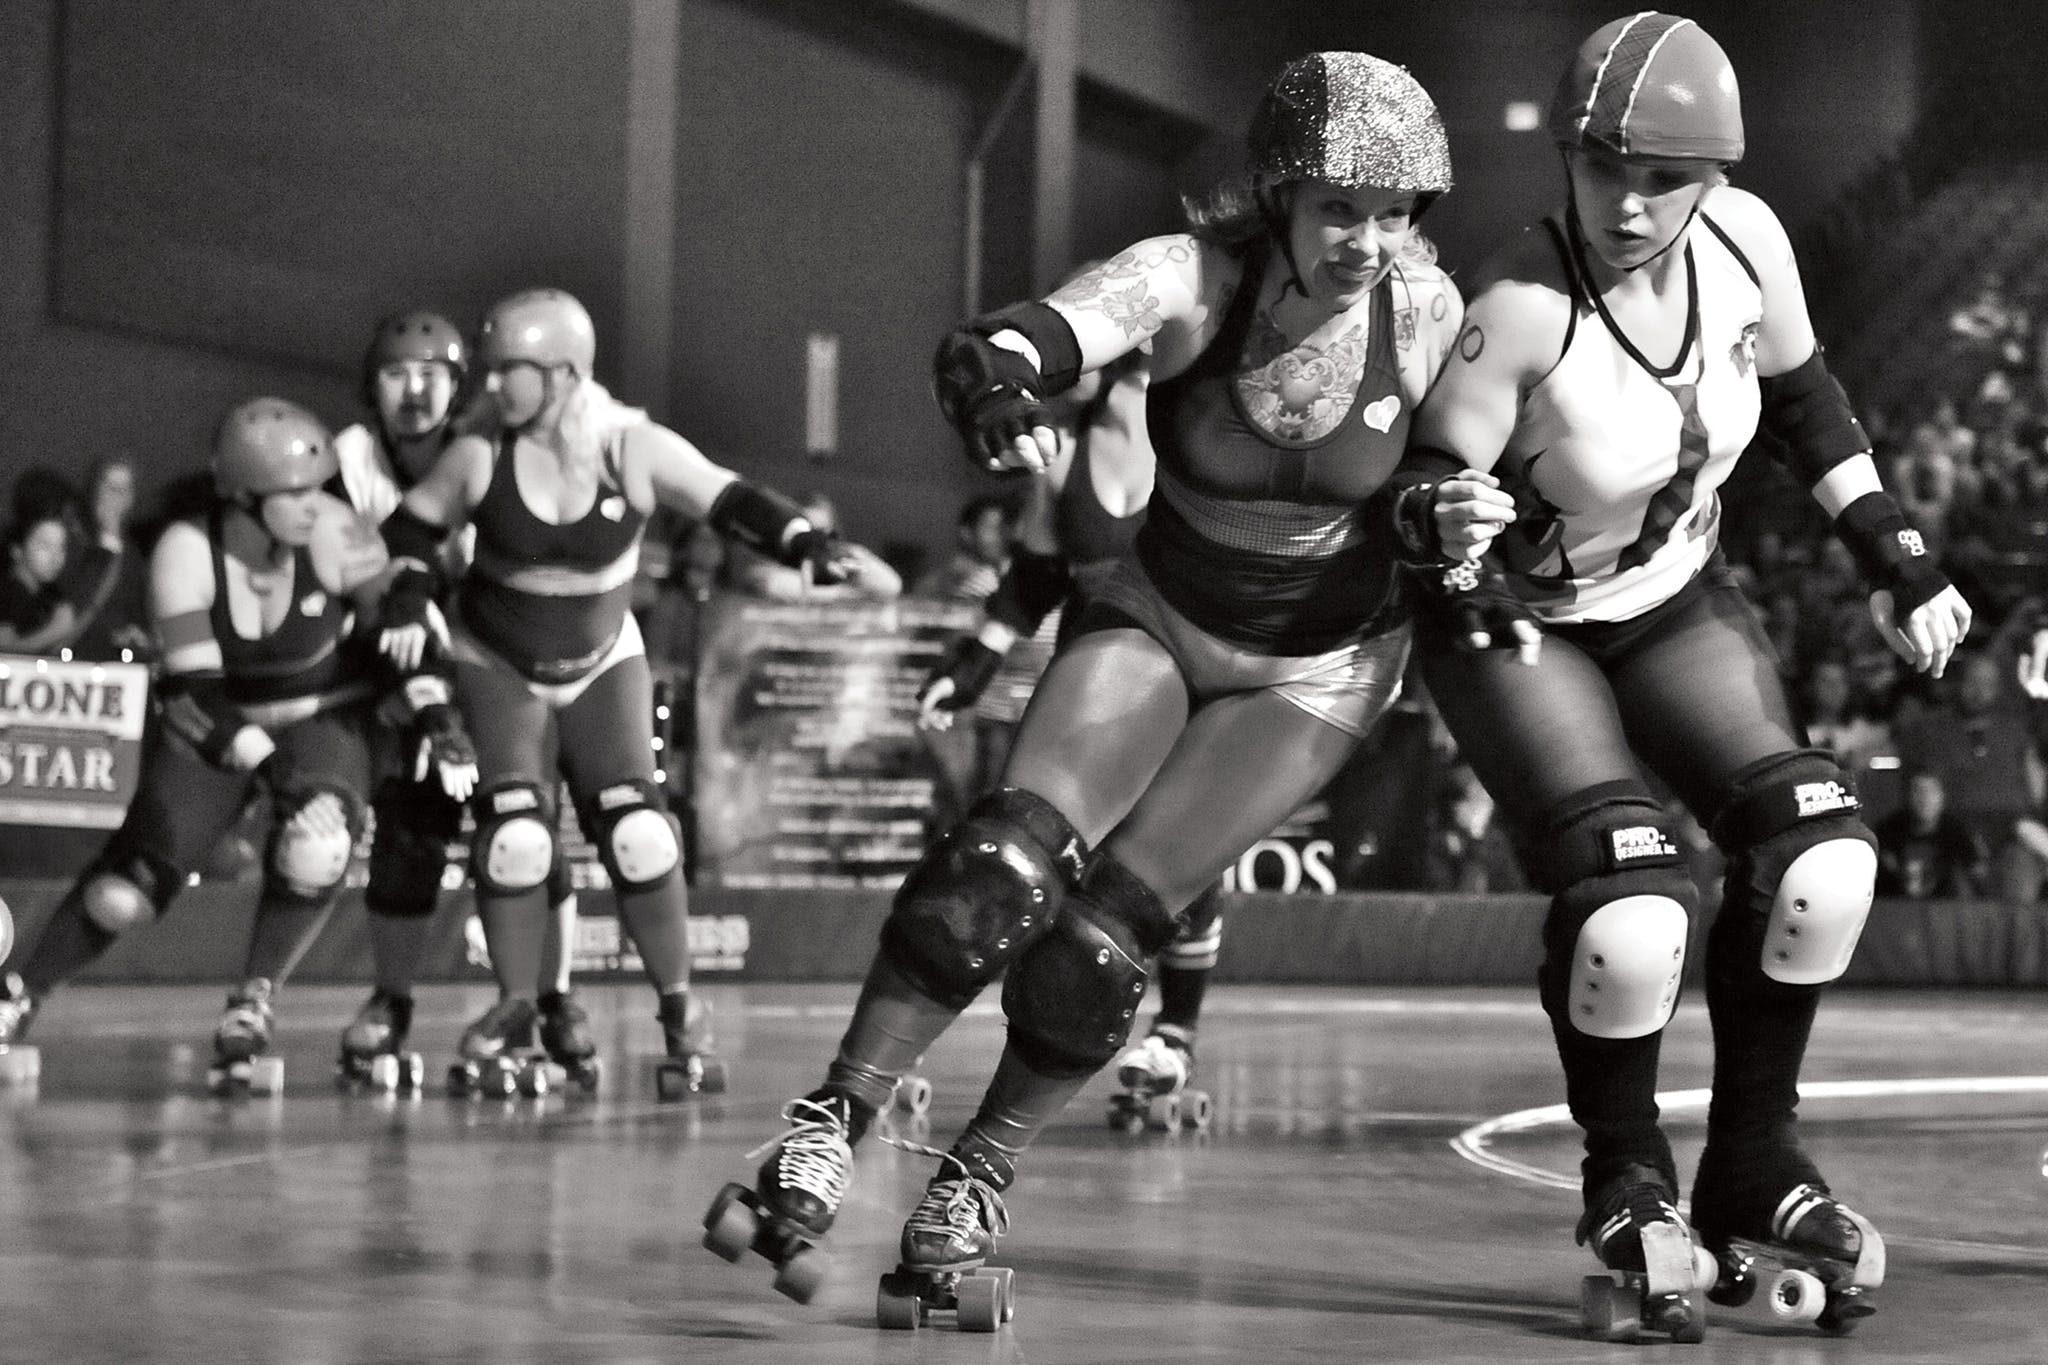 Hot Box face off against Notorious D.I.E., another team in the Texas Rollergirls league, in Austin in 2011.